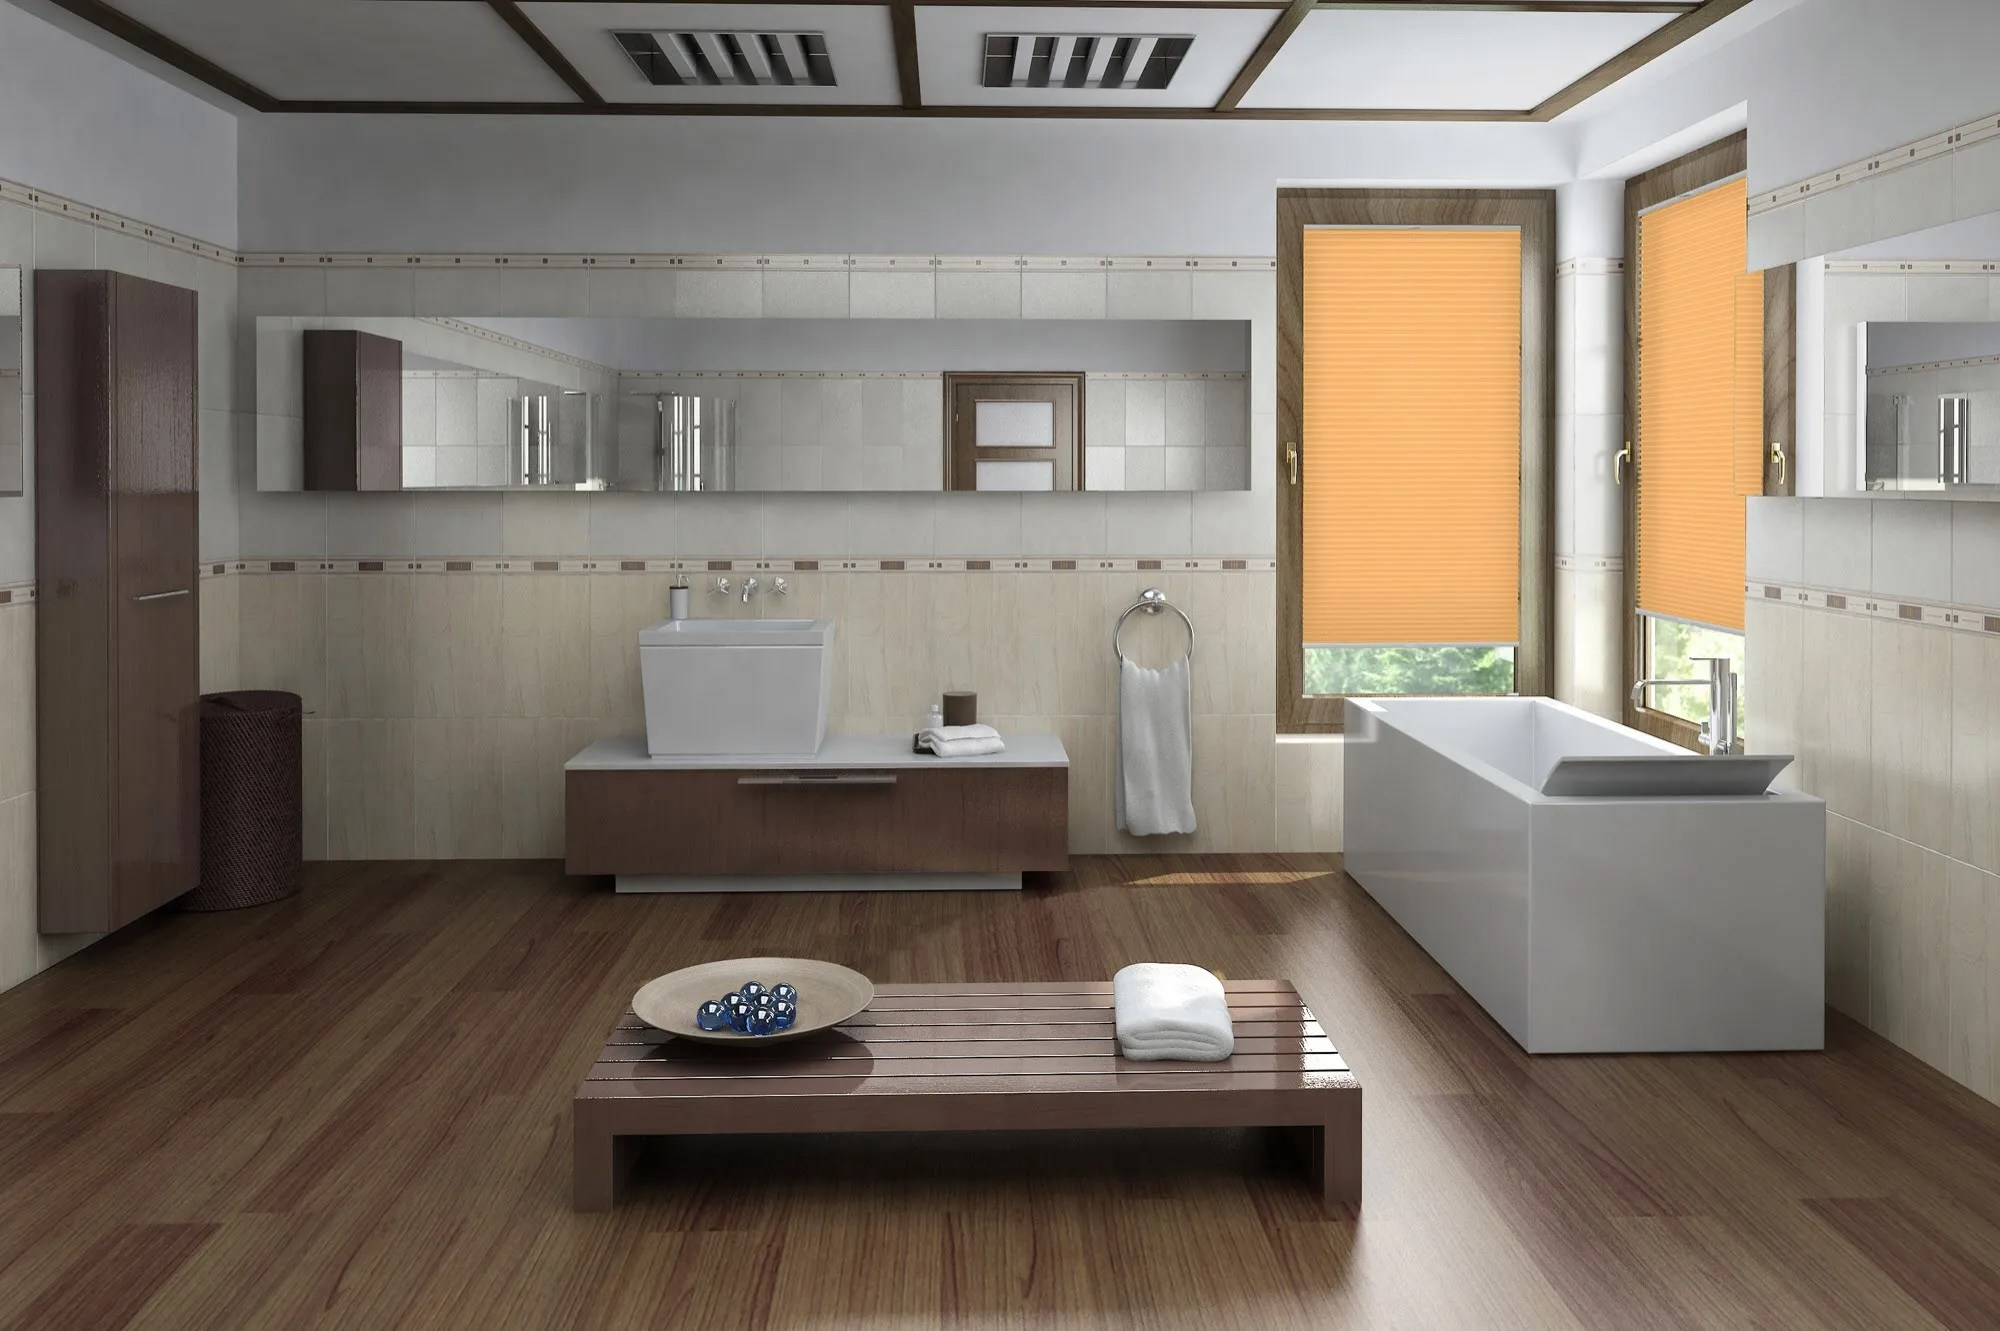 Kleines Bad Modern Plissee Cosiflor Rovereto 1131 In Orange Plissee Experte De